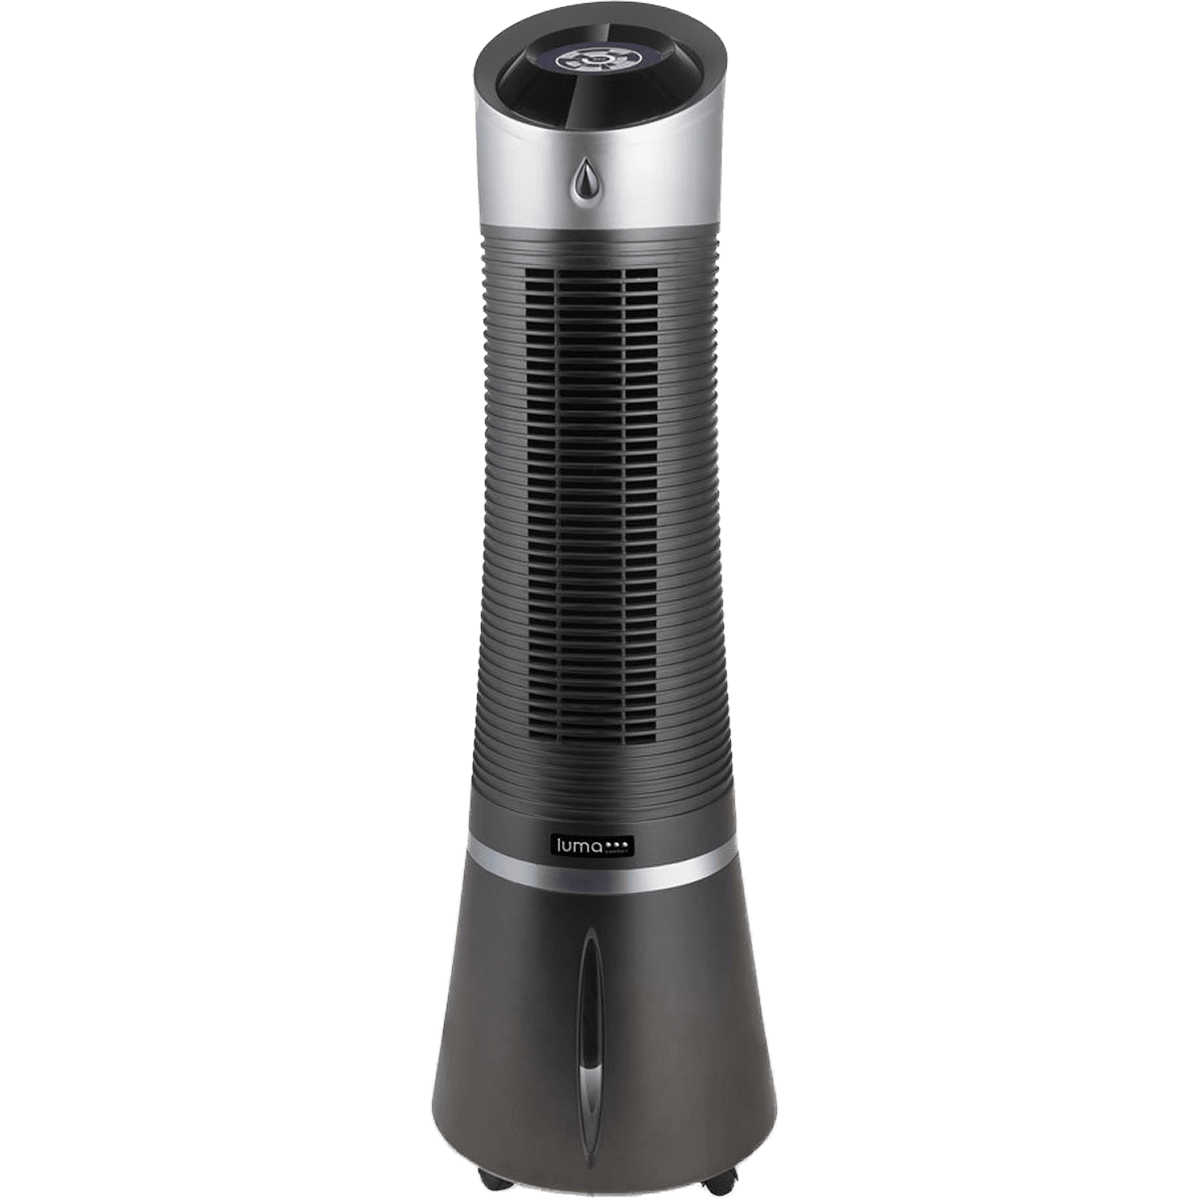 Luma Comfort EC45S Swamp Cooler - Tower lu2678